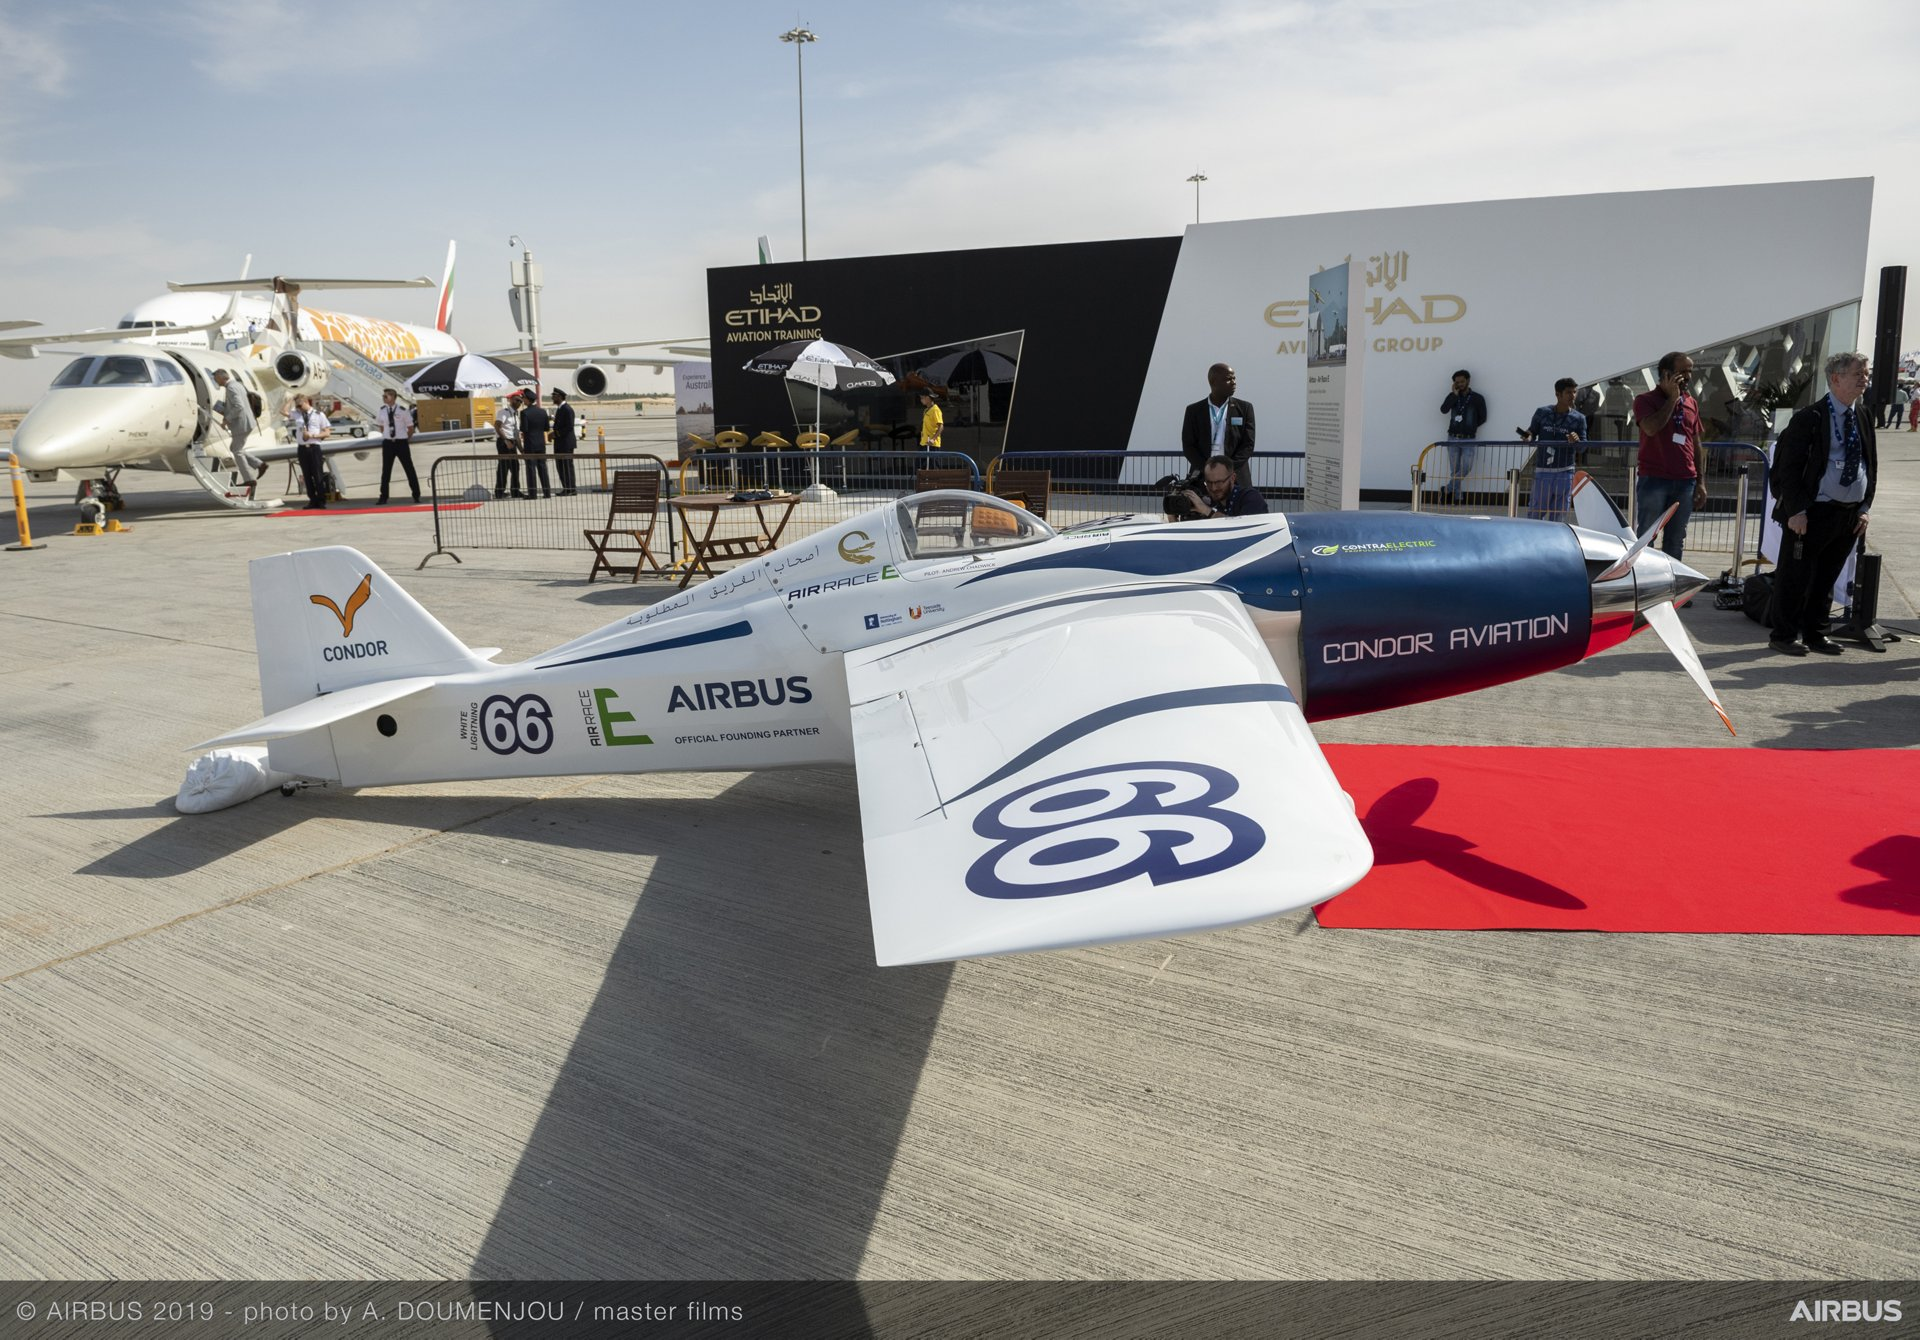 This is the first e-racer set to compete in Air Race E